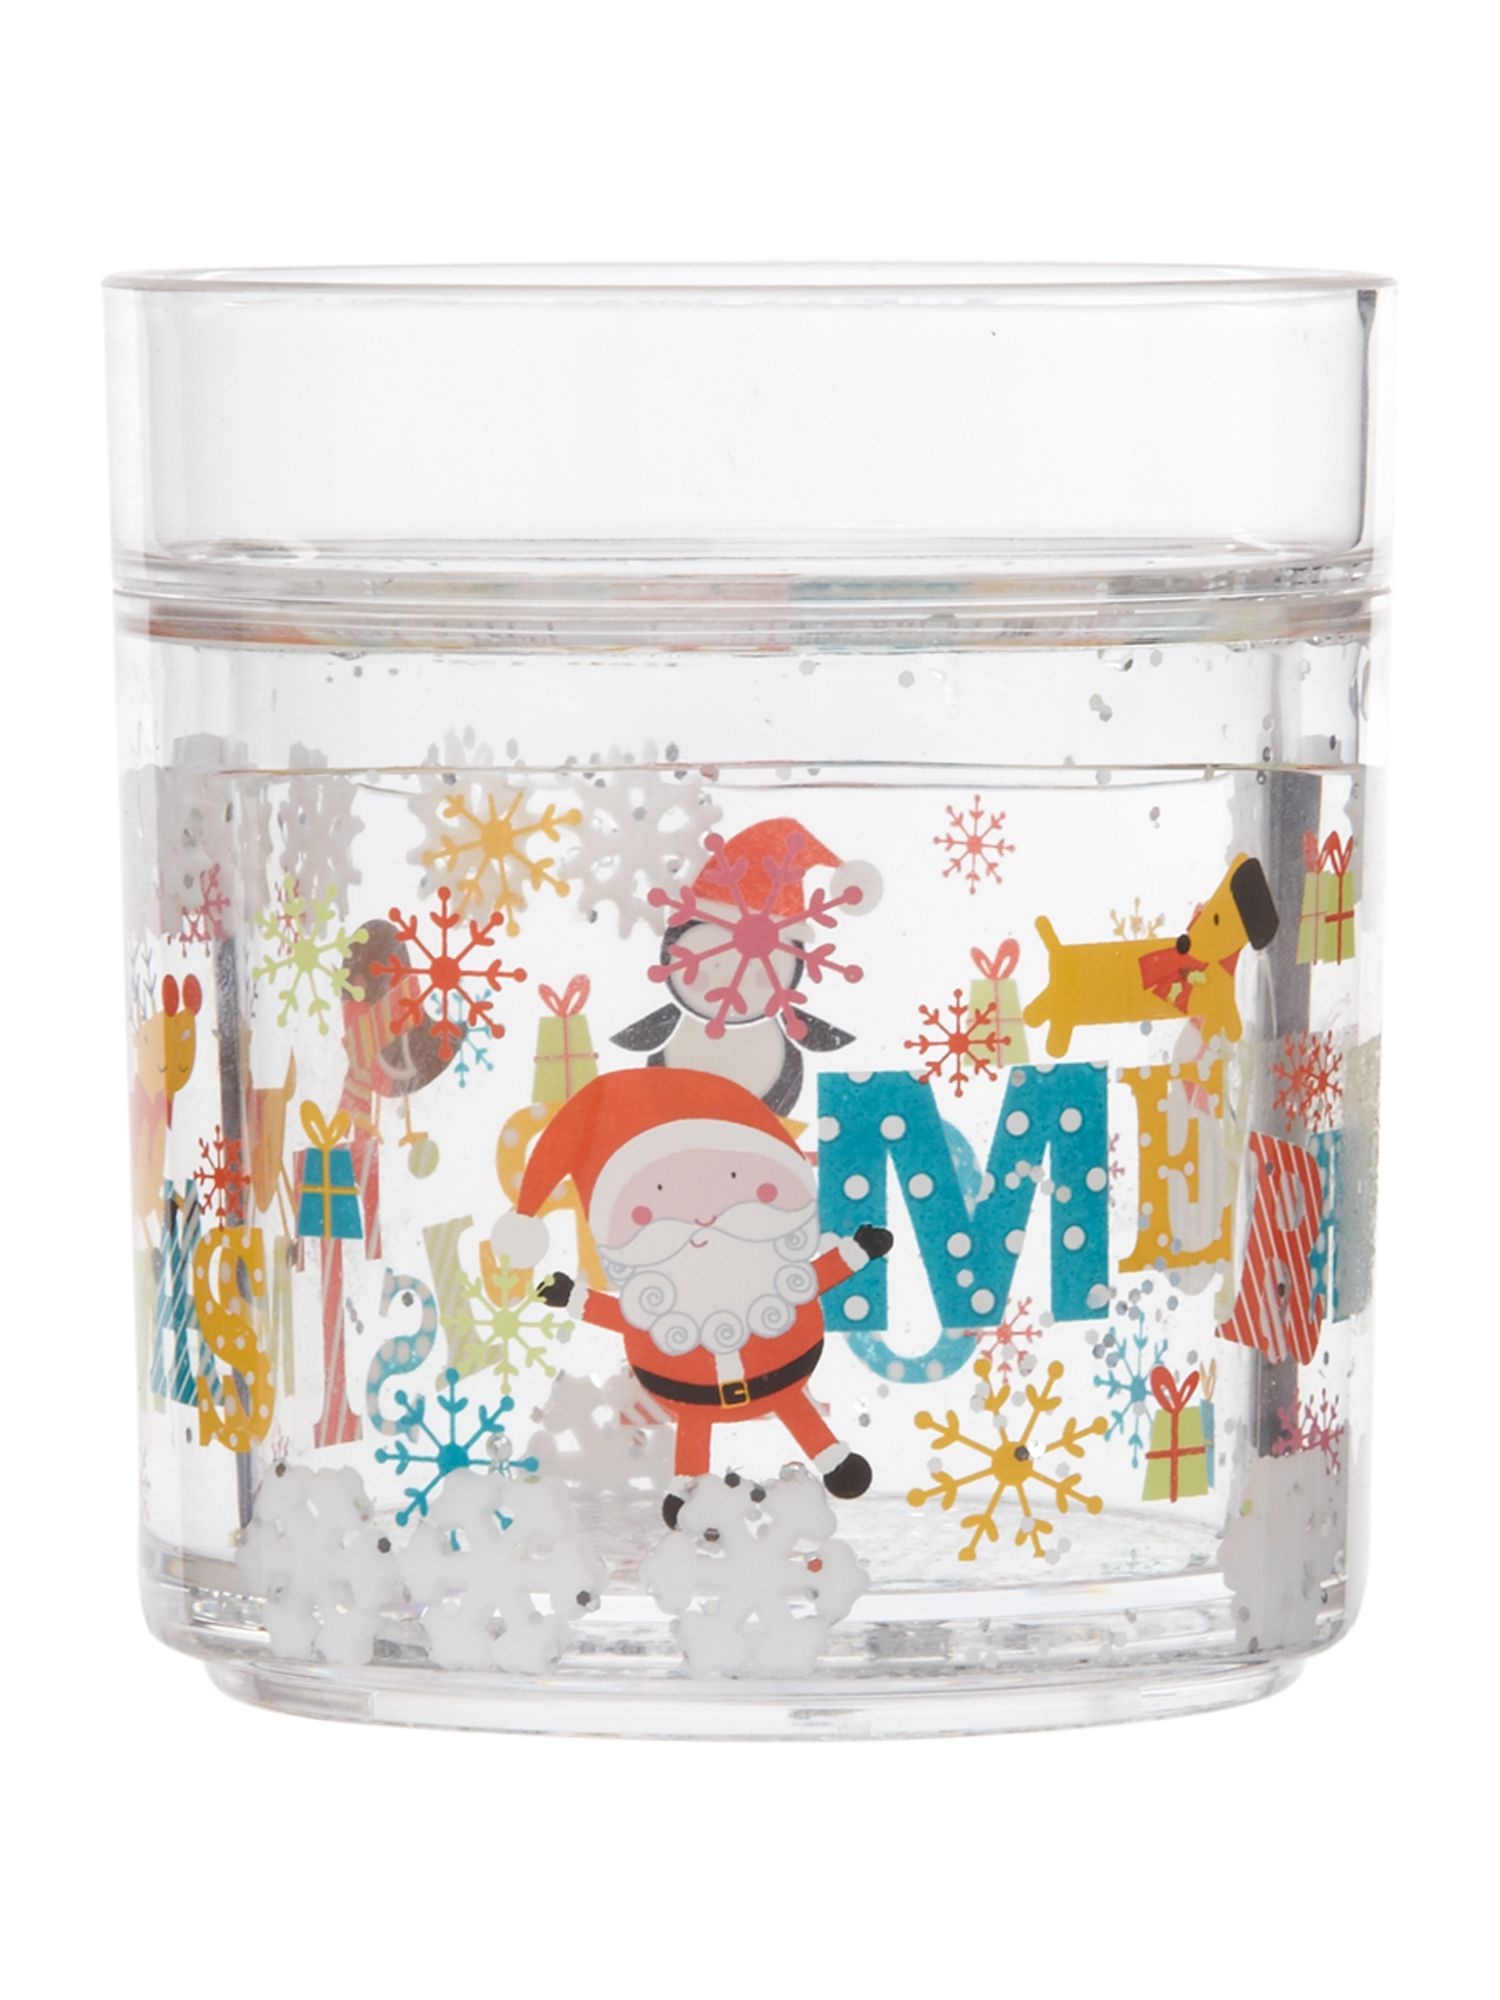 Novelty frosty shaker tumbler